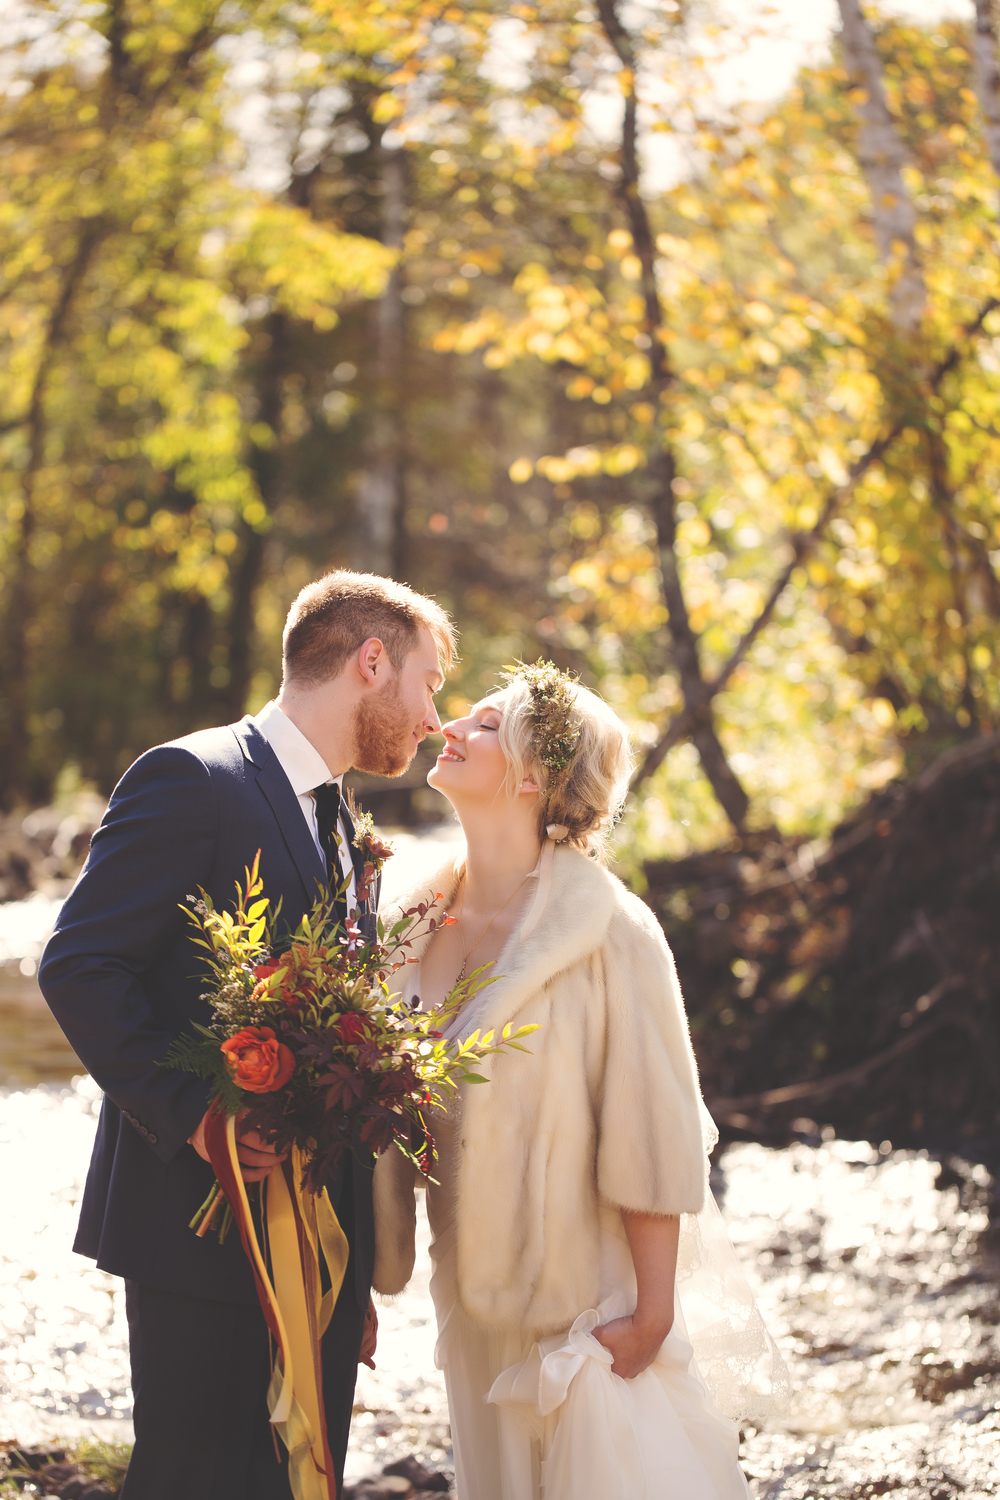 Duluth Wedding and Portrait Photography by Mad Chicken Studio